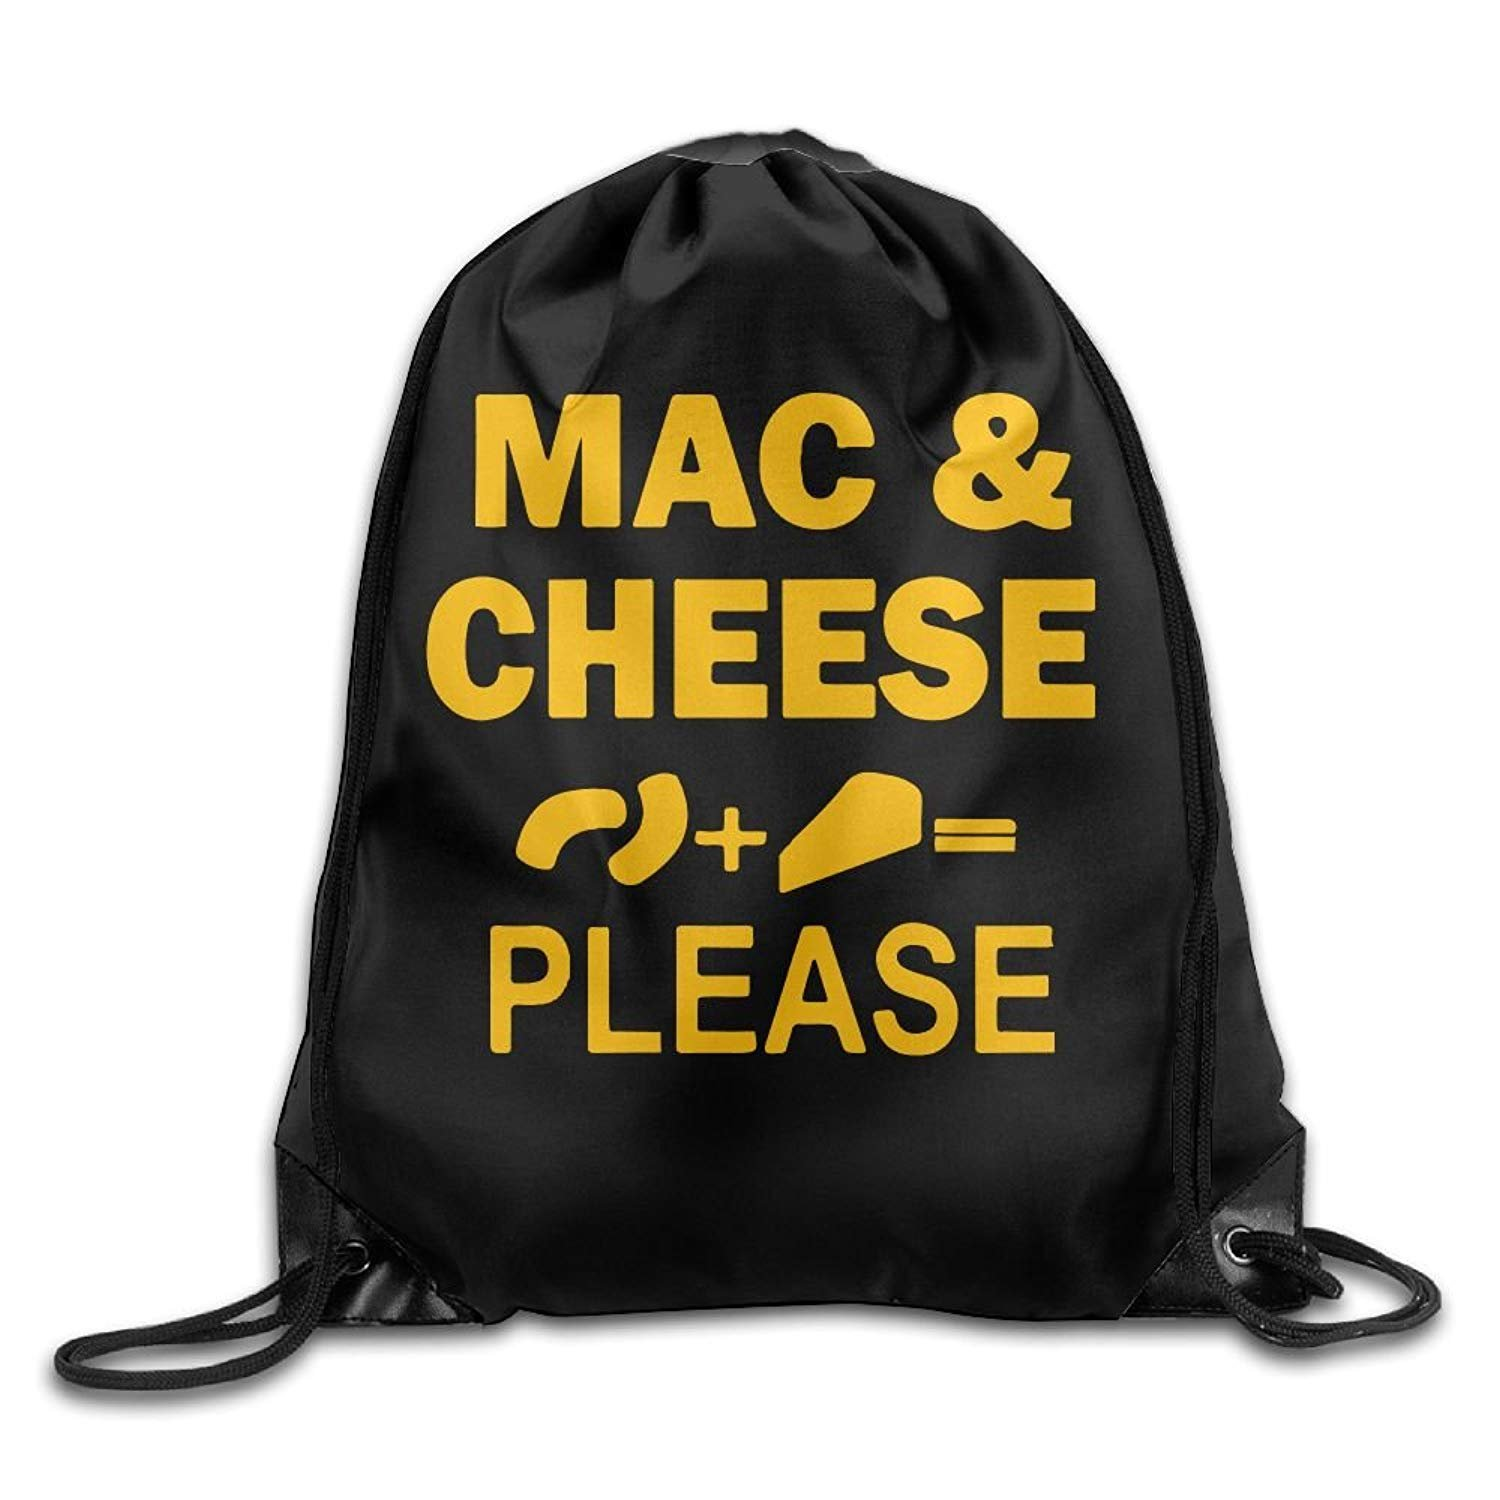 Mac And Cheese Please Drawstring Pack Beam Mouth School Travel Backpack Shoulder Bags For Men And Women